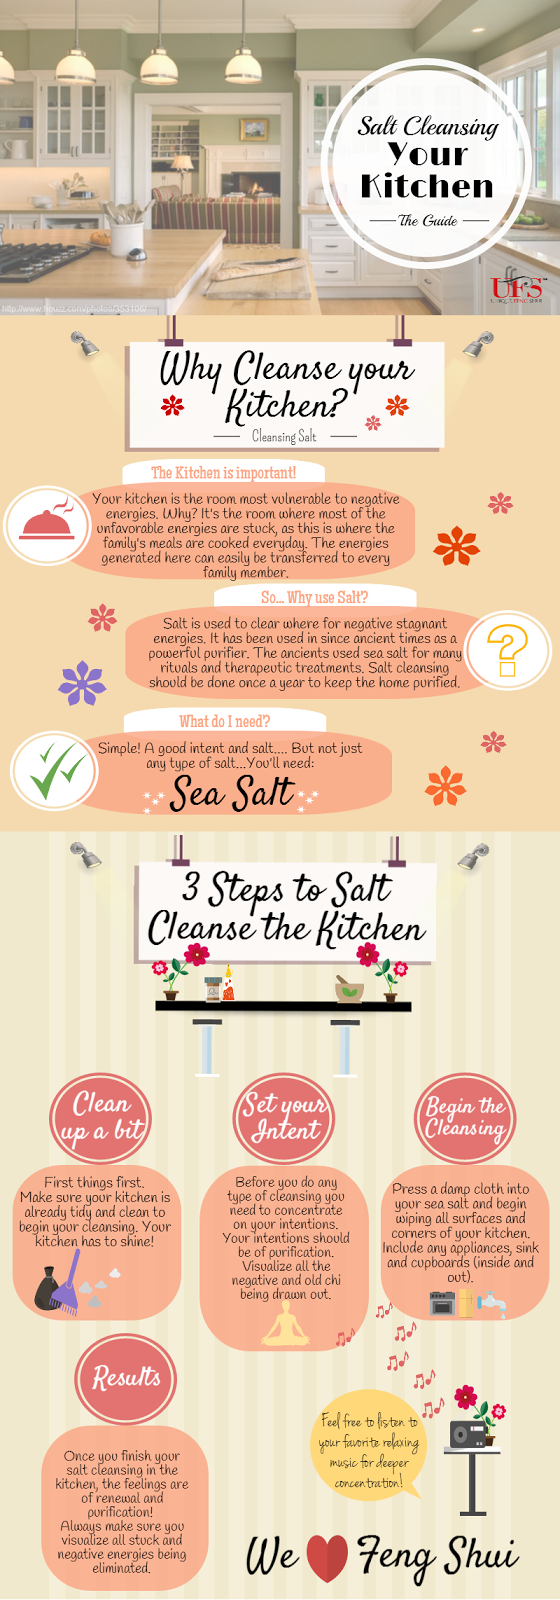 How to salt cleanse